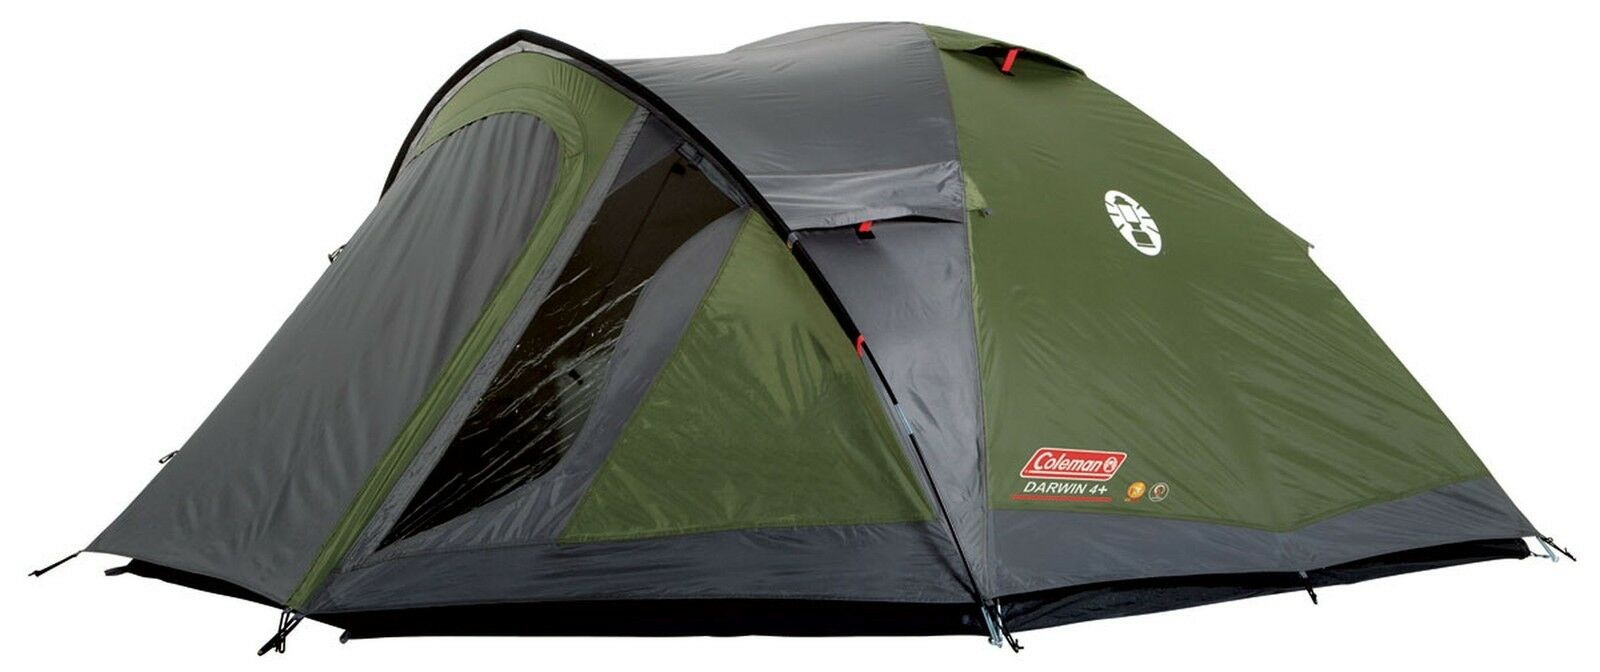 Coleman Dome Tent Darwin 4 plus  Tent 2000012150  free shipping